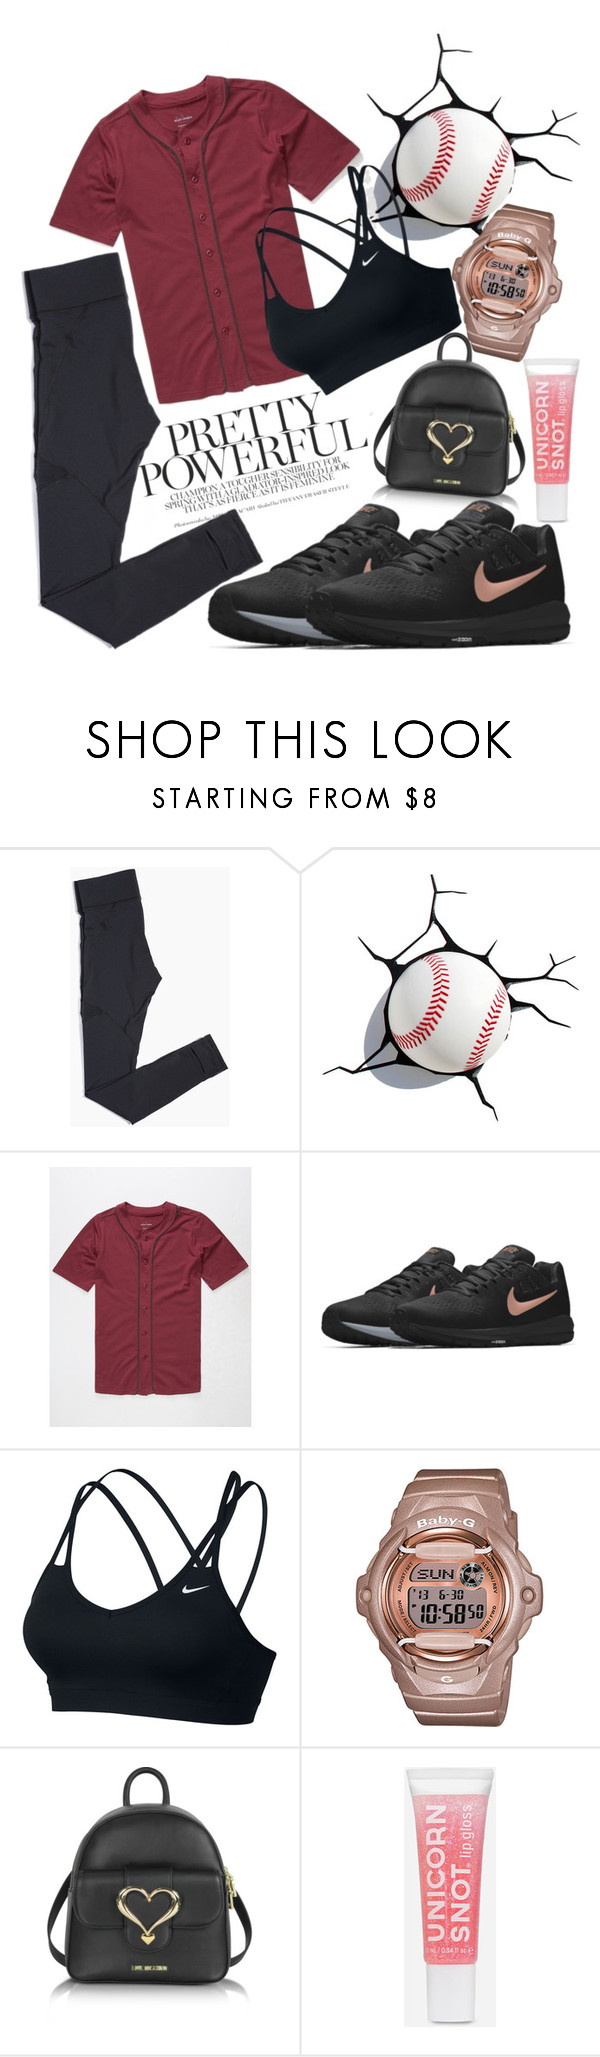 """""""Untitled #358"""" by sassymermaid ❤ liked on Polyvore featuring Blue Crown, NIKE, G-Shock and Love Moschino"""